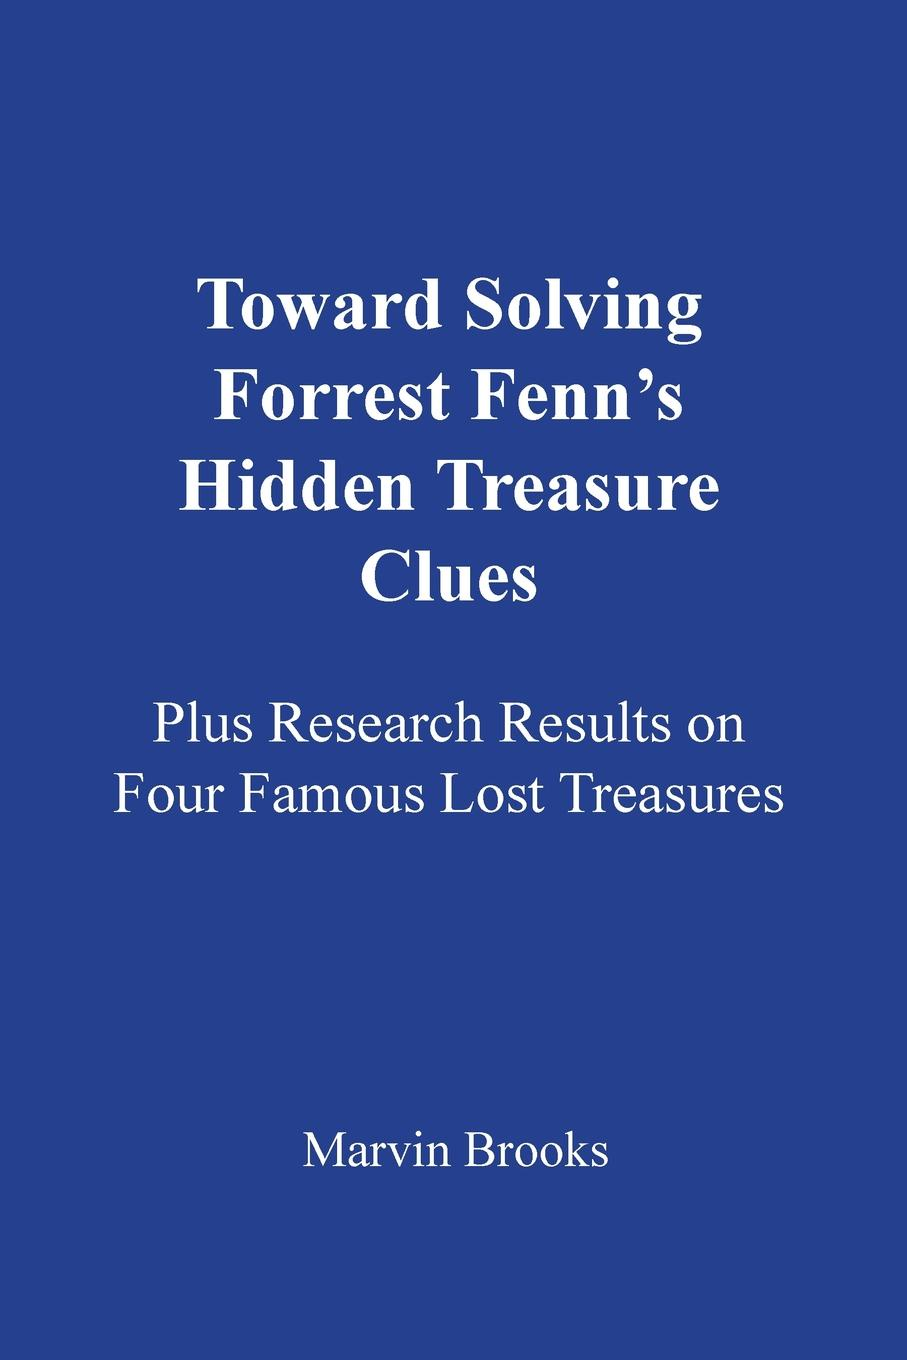 Marvin Brooks Toward Solving Forrest Fenn's Hidden Treasure Clues. Plus Research Results on Four Famous Lost Treasures william pain the builder s pocket treasure